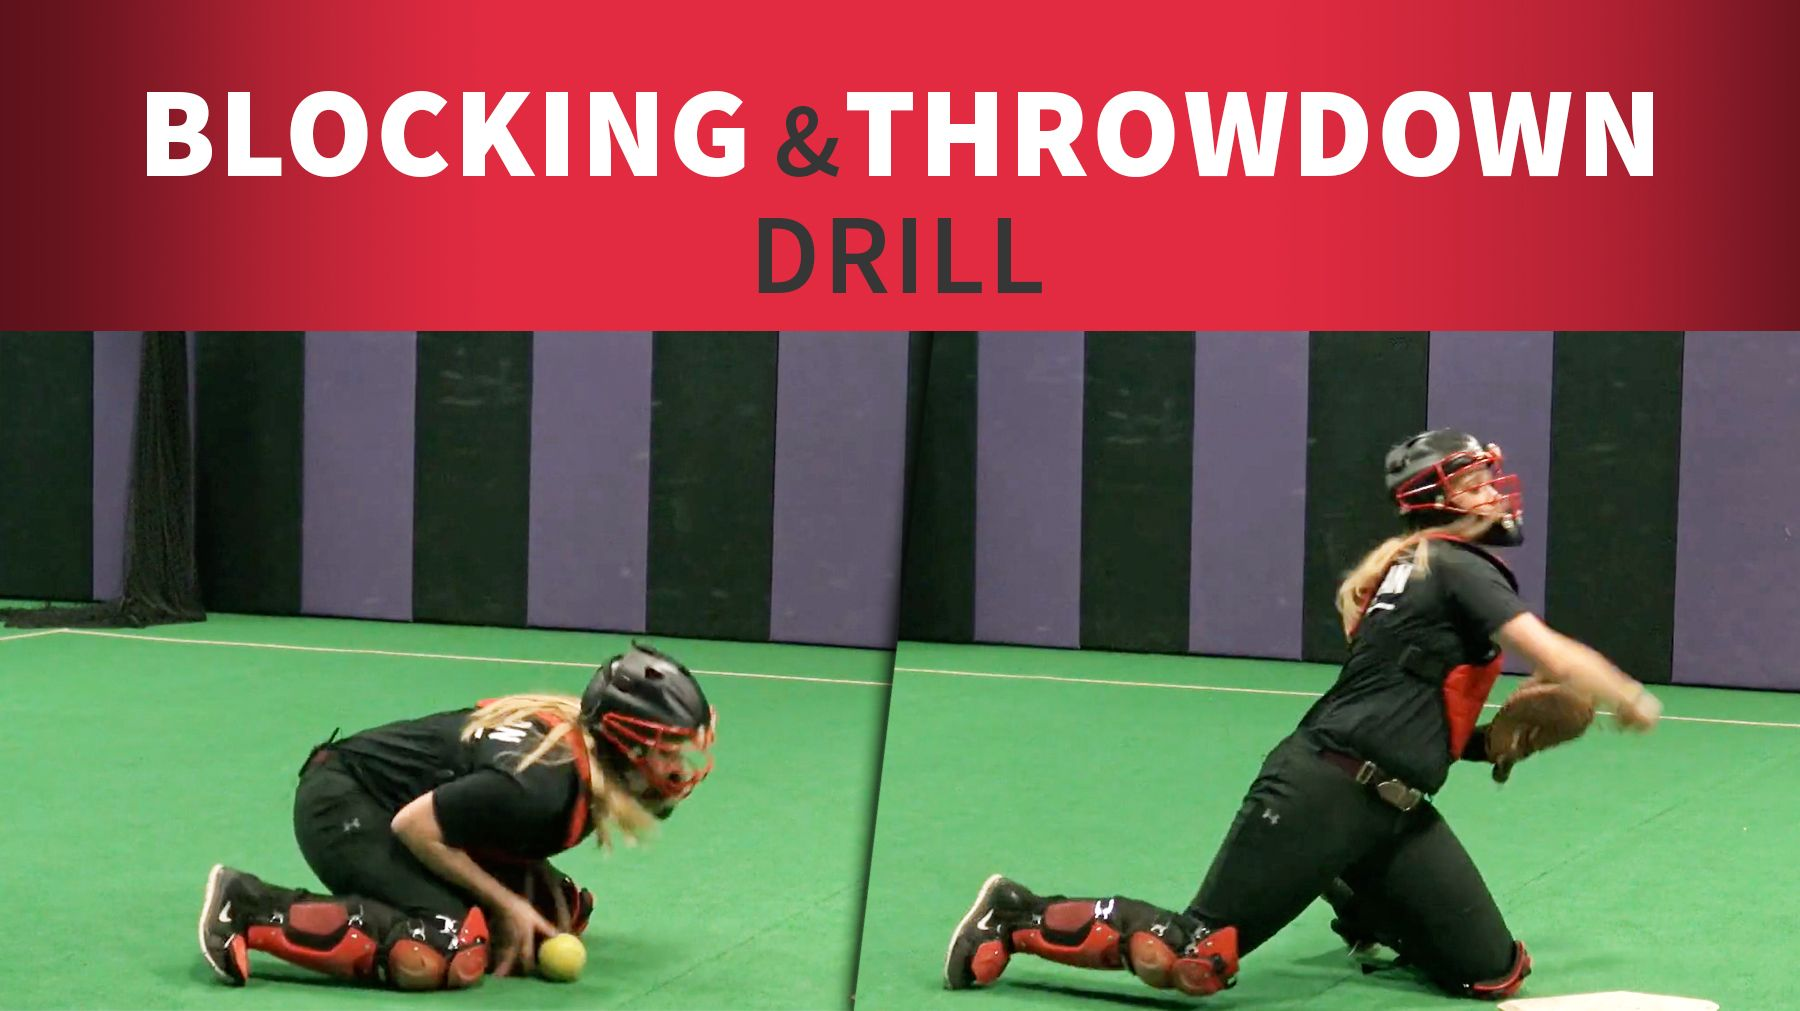 Catching: Blocking and throw-down drill